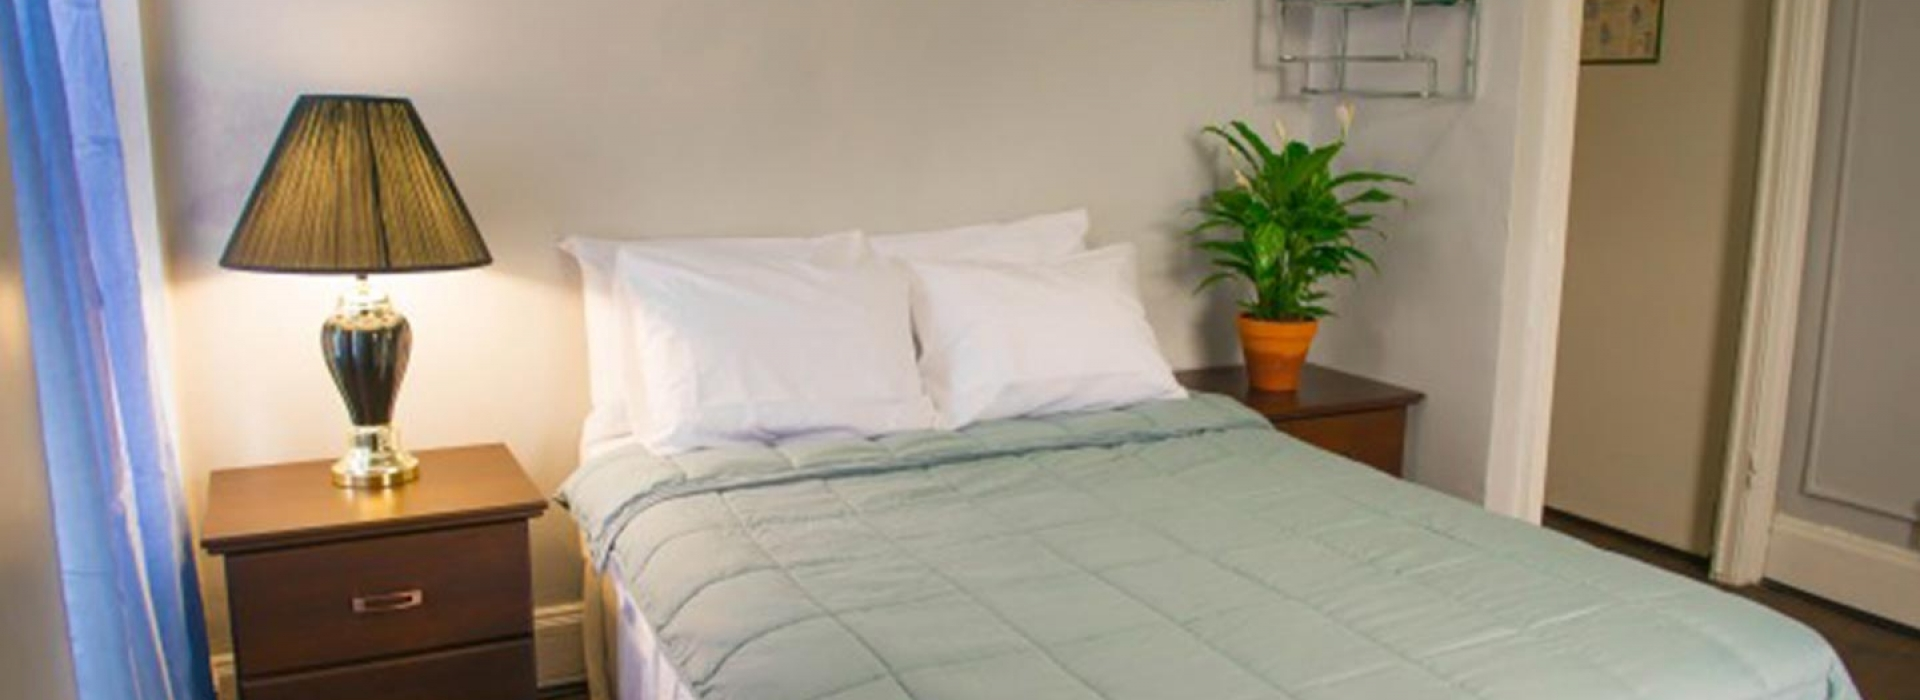 Hotel & Hostel Rooms in New York City | Guest Rooms at the